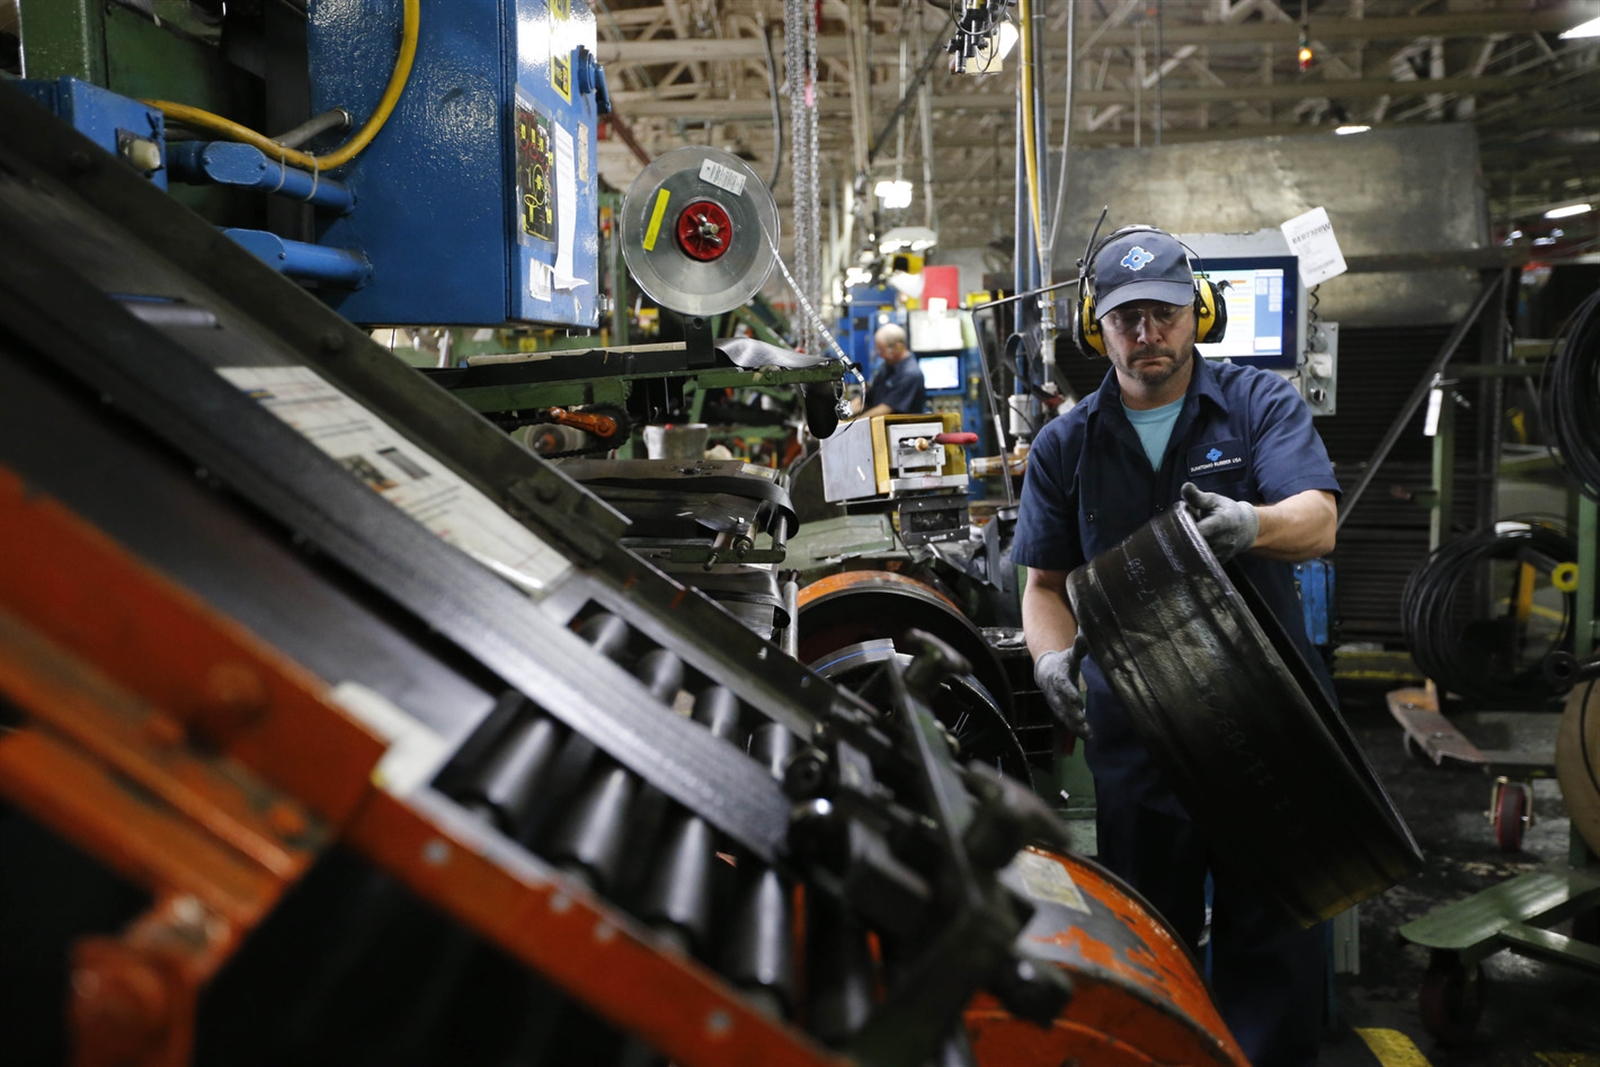 Tire builder Kevin Varney assembles a motorcycle tire at the Sumitomo Rubber USA tire manufacturing plant in Tonawanda in November. (Derek Gee/ Buffalo News file photo)